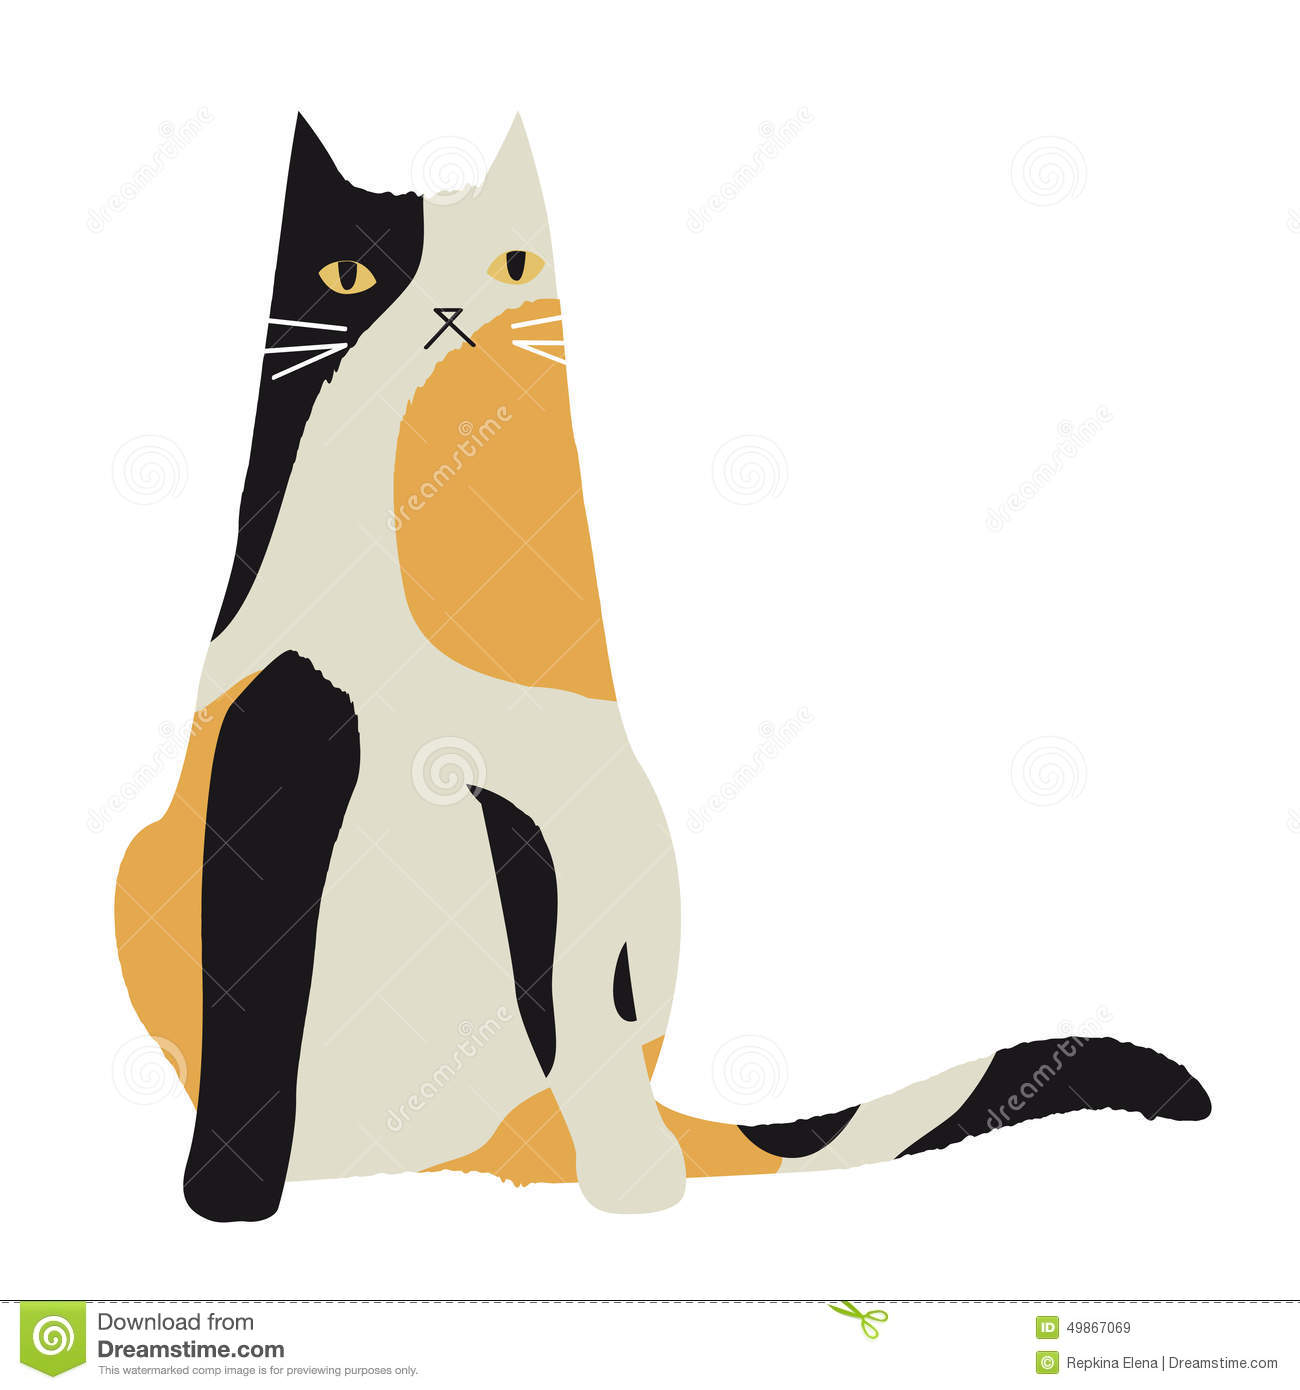 Calico cat love clipart.